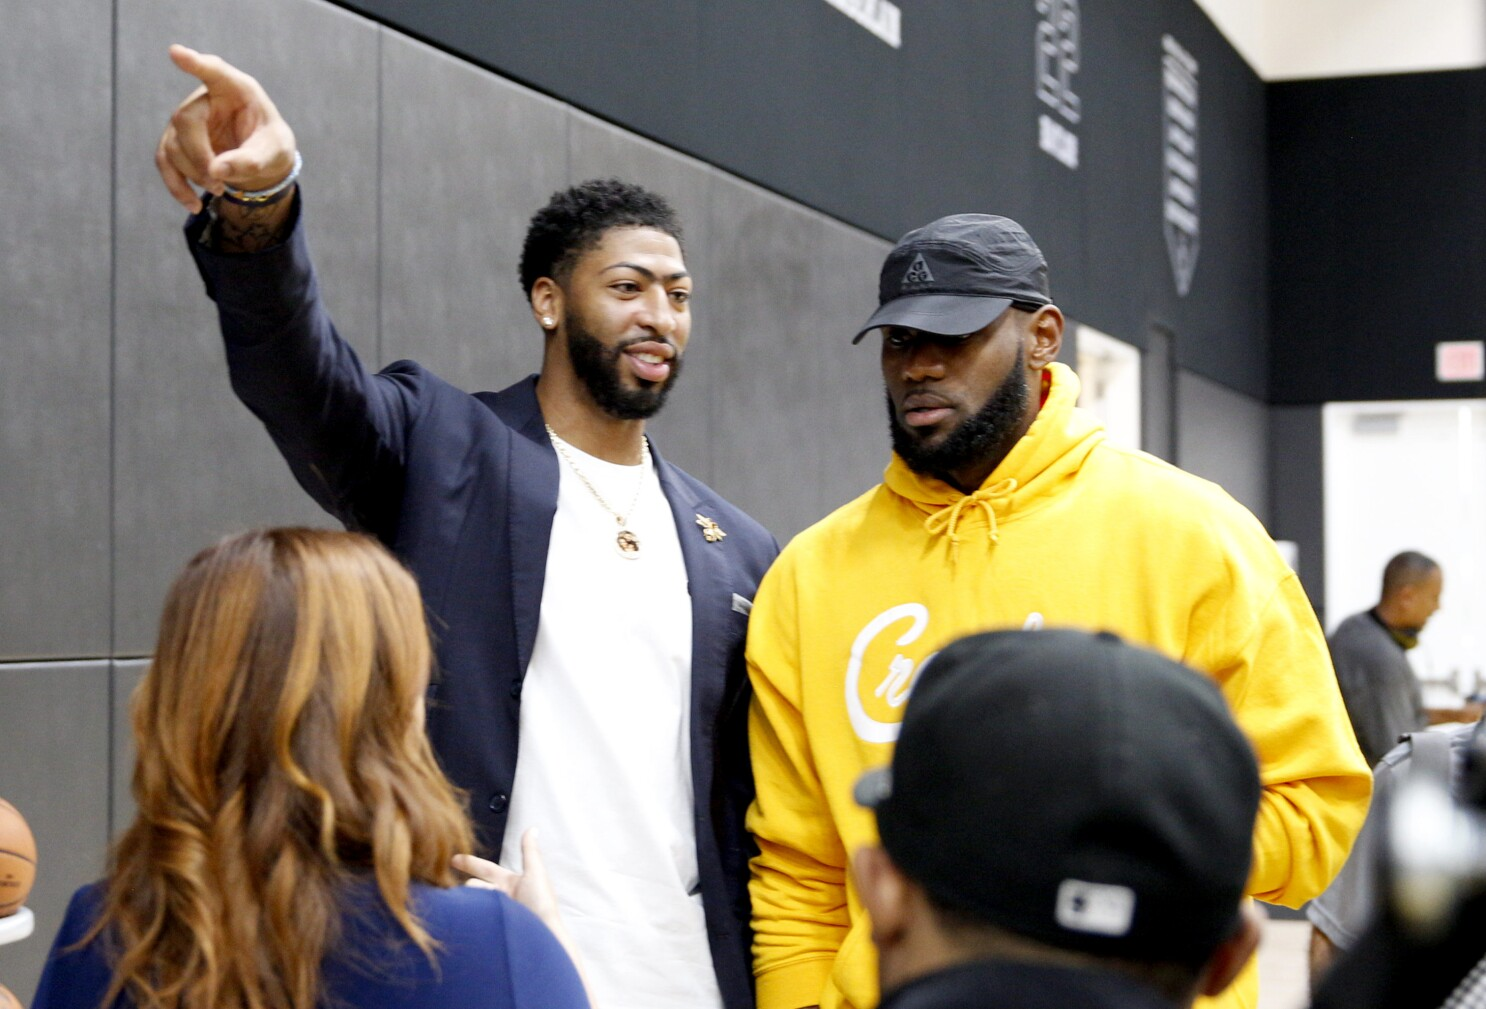 Column: Golden age of L.A. sports being fueled by star-studded rivalries